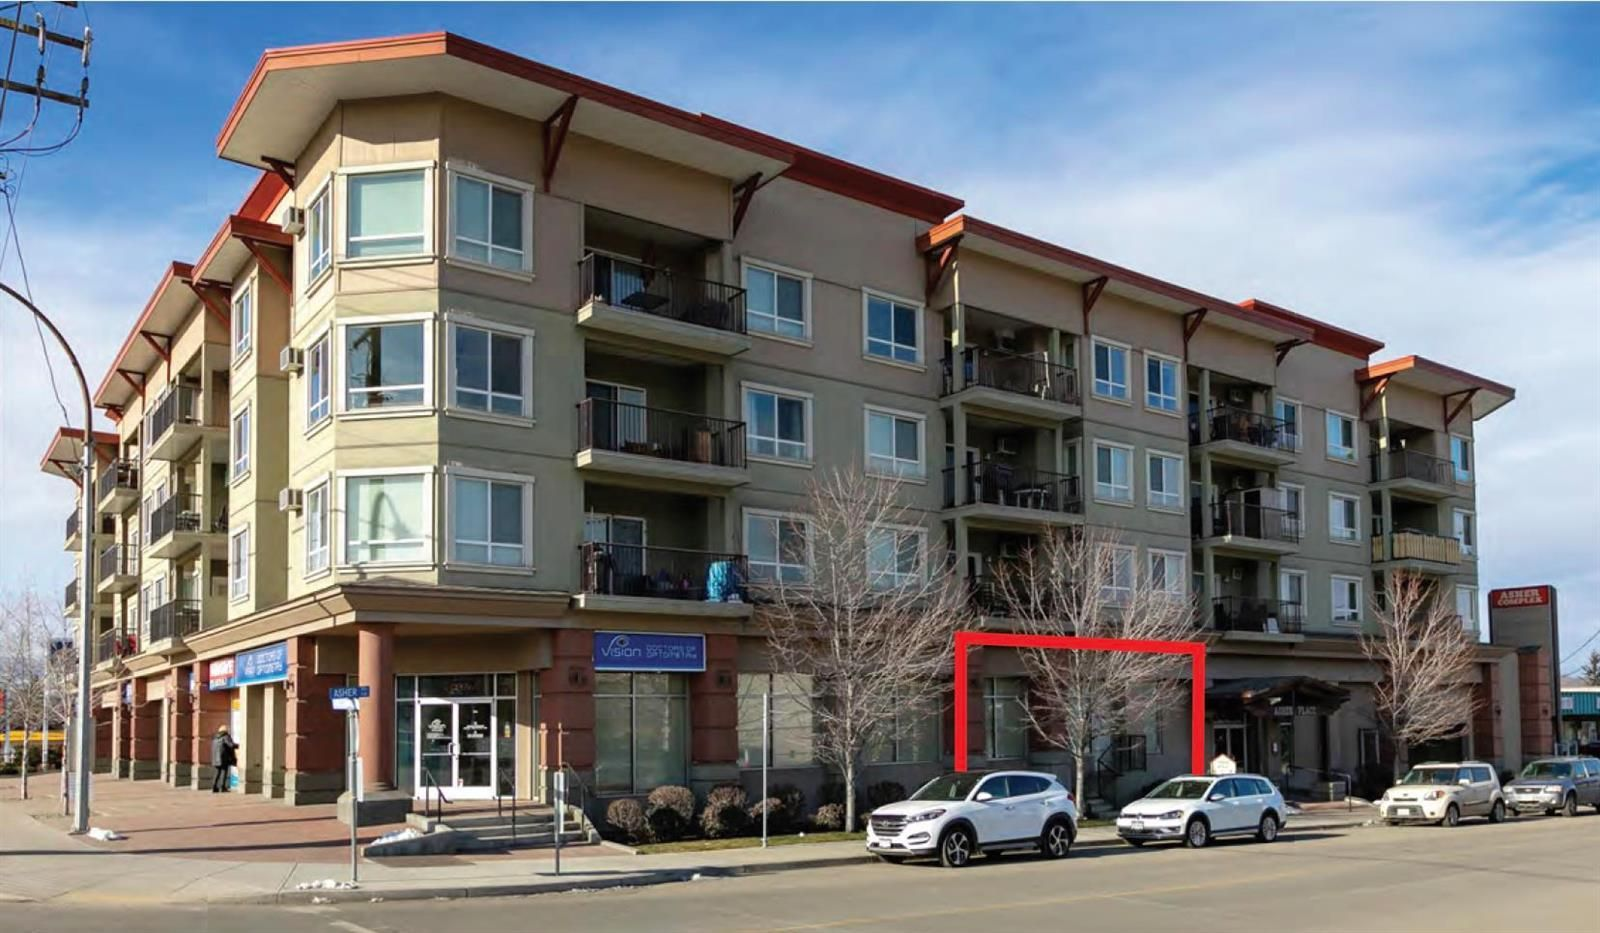 Main Photo: 130 Asher Road, in Kelowna, BC: Office for lease : MLS®# 10240308